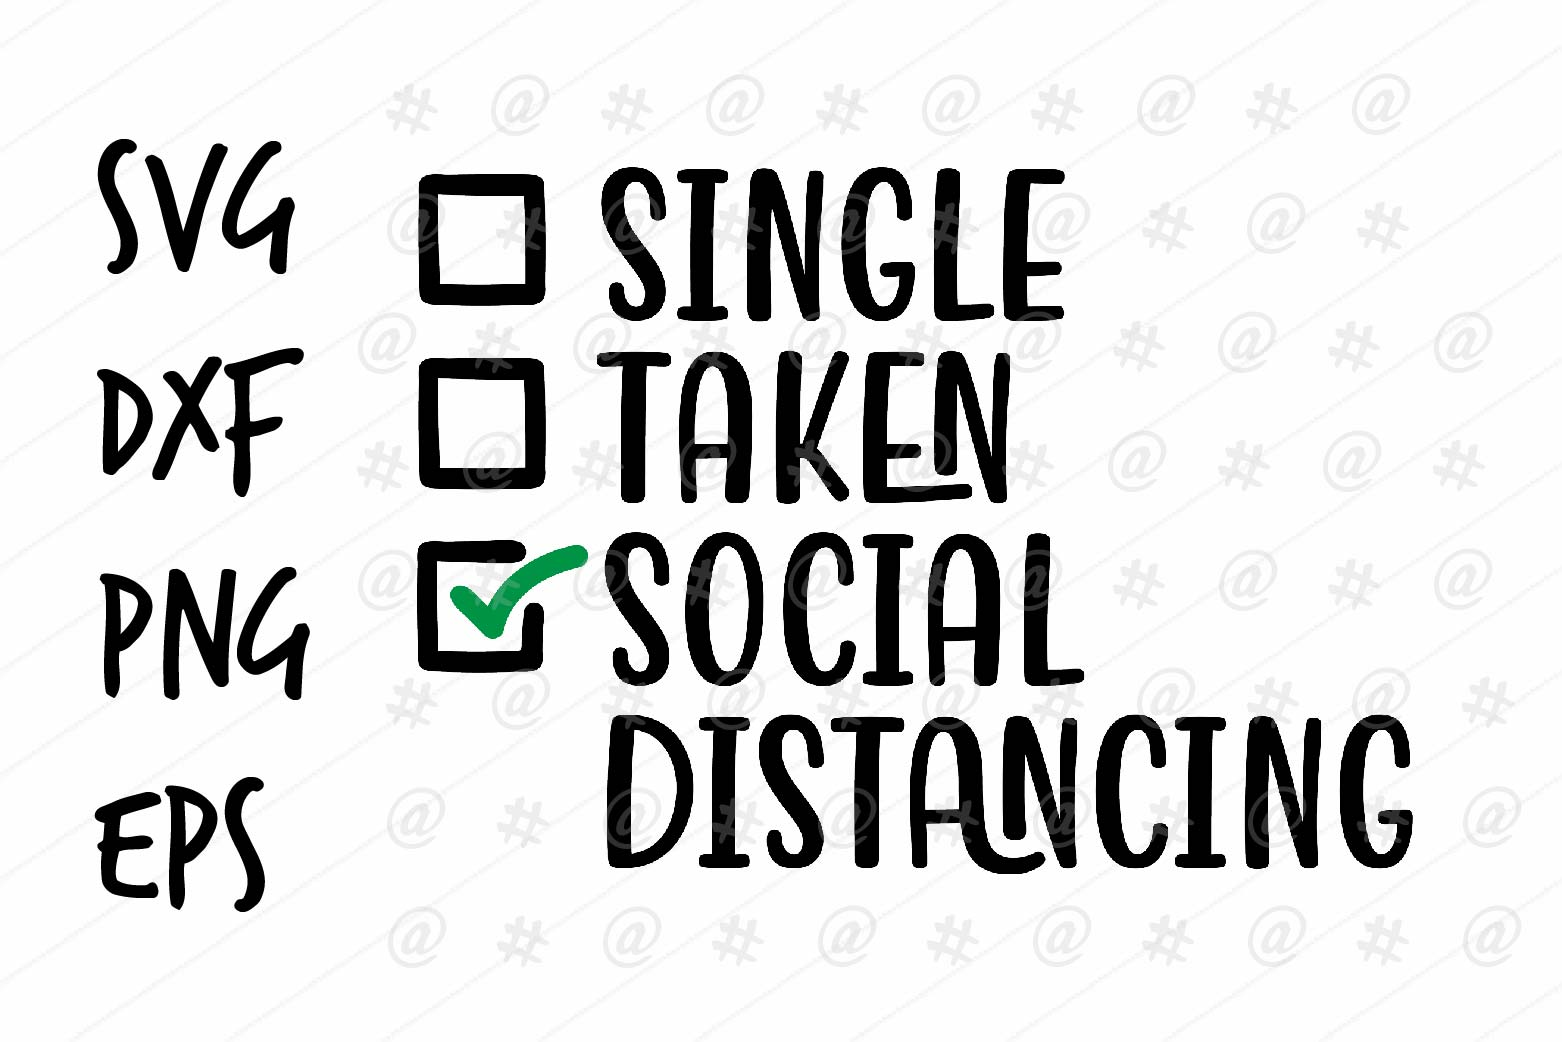 Download Free Single Taken Social Distancing Graphic By Spoonyprint Creative for Cricut Explore, Silhouette and other cutting machines.